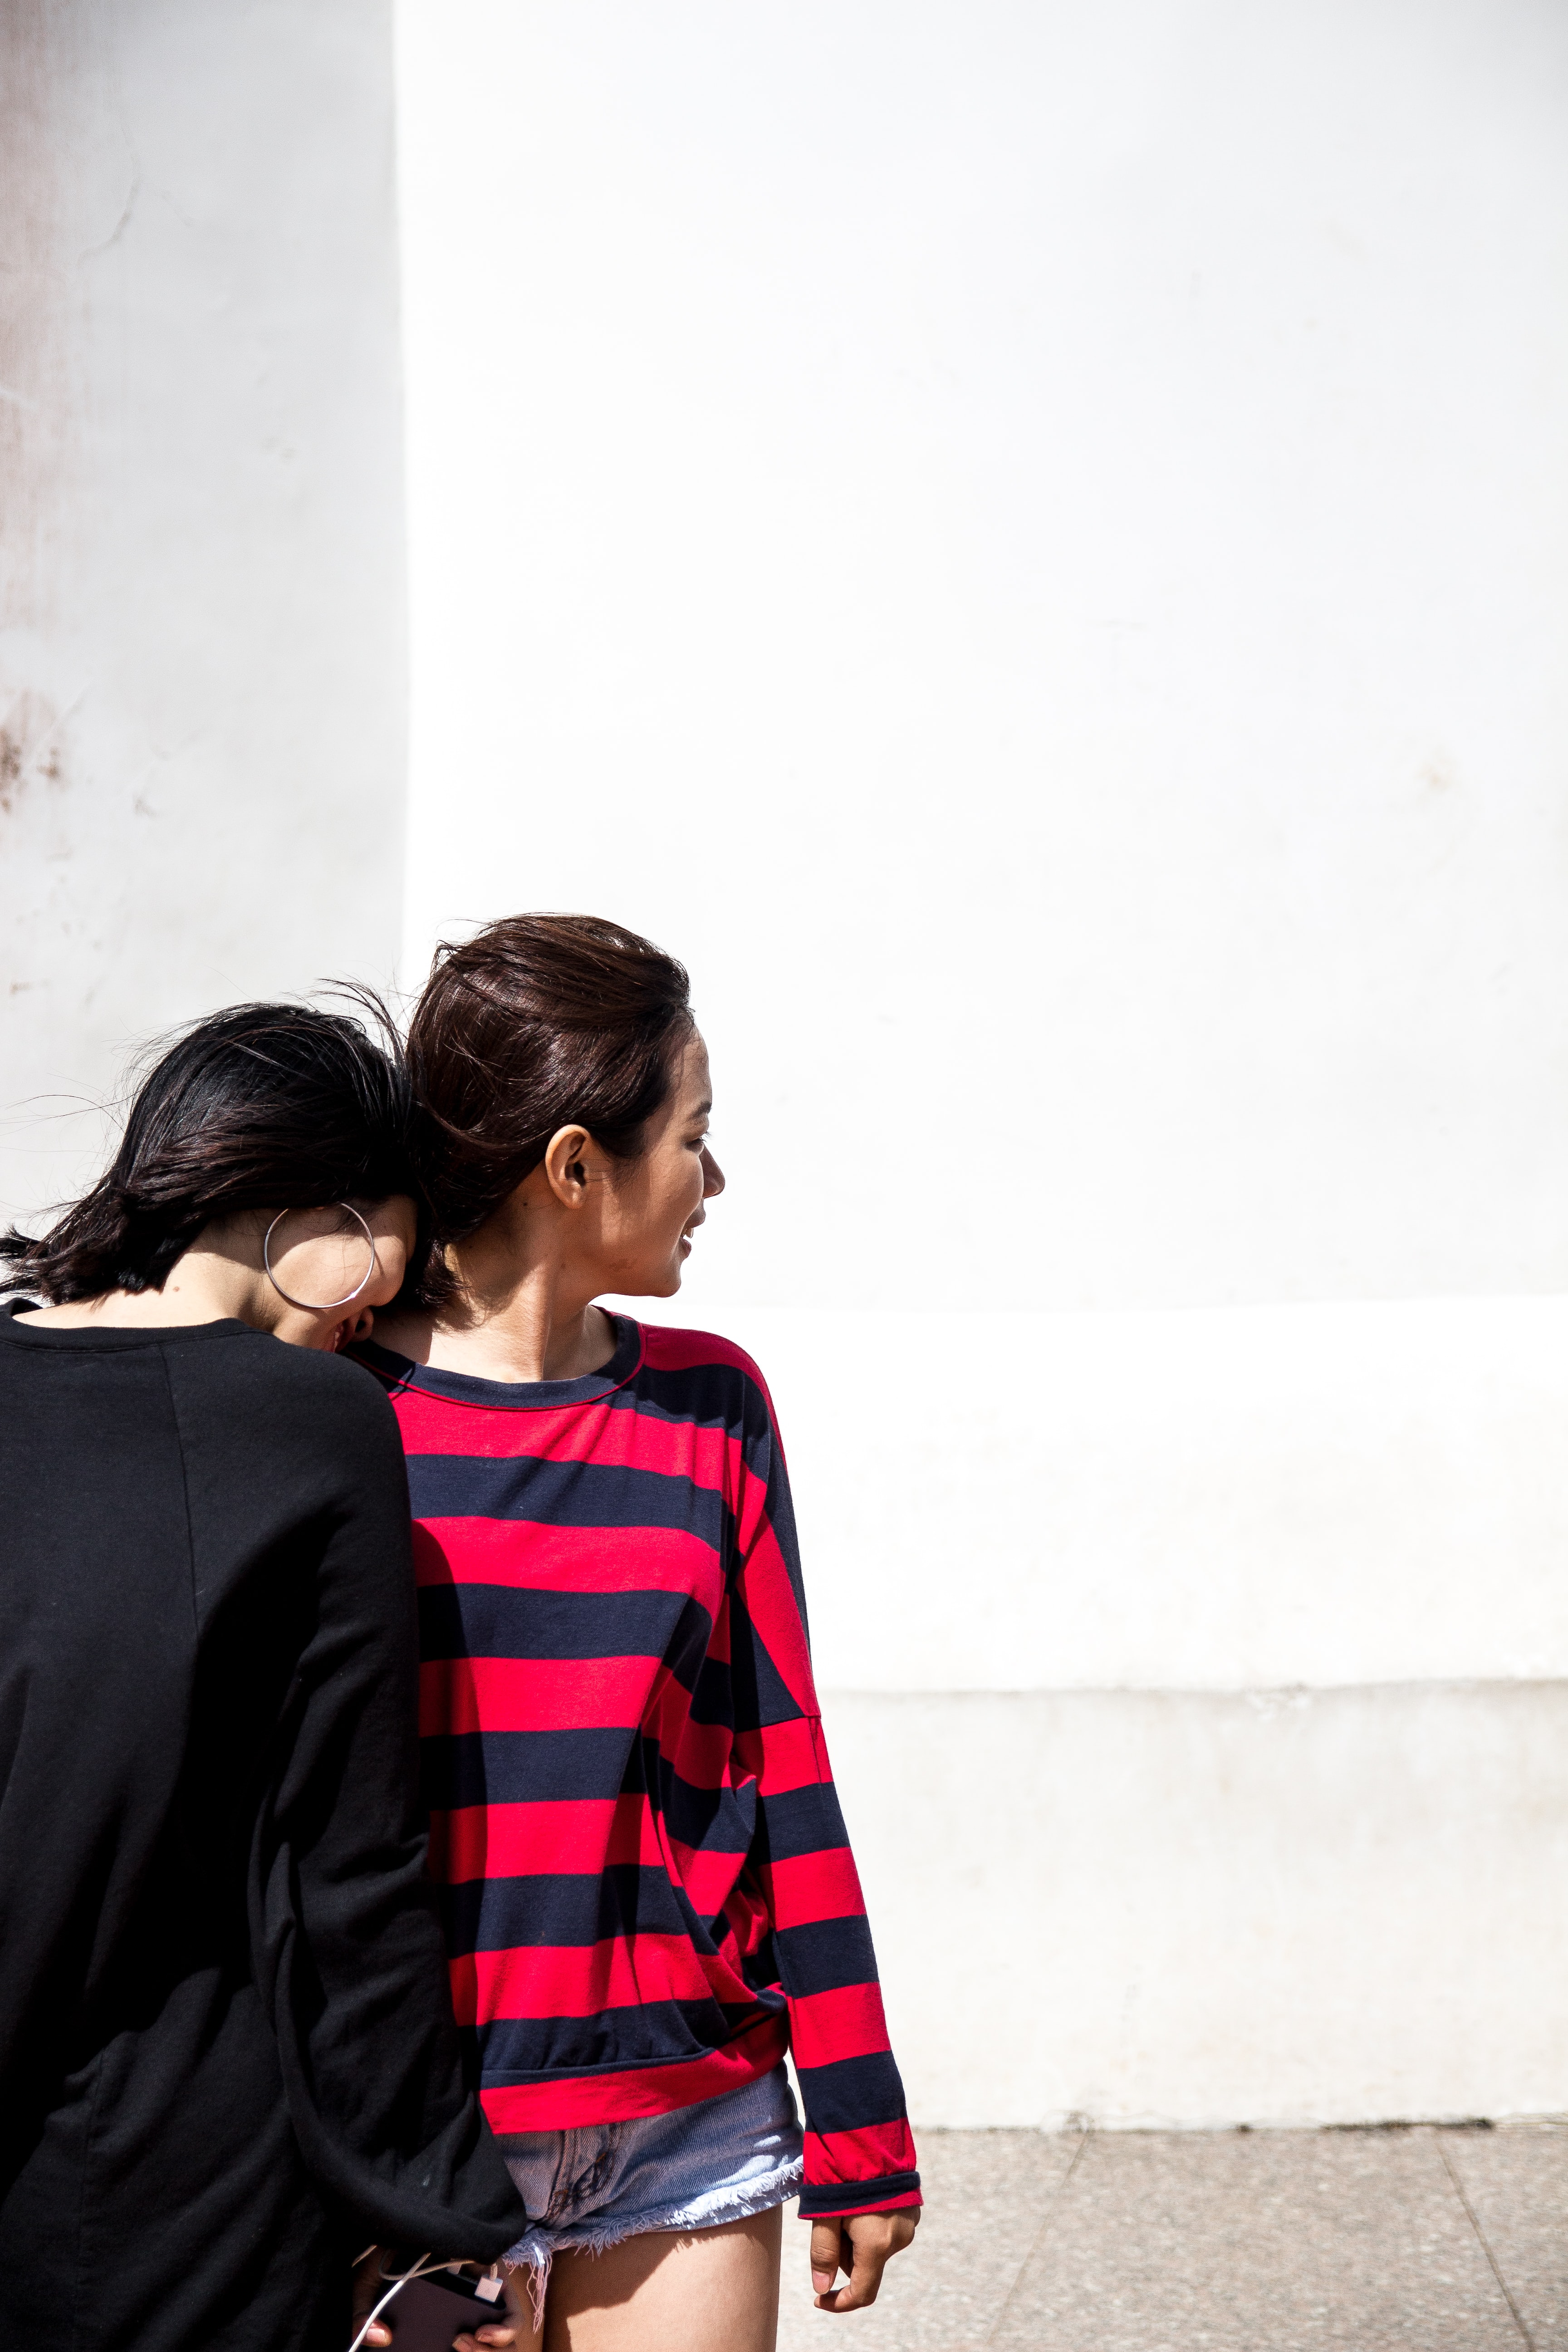 woman wearing black and red striped shirt